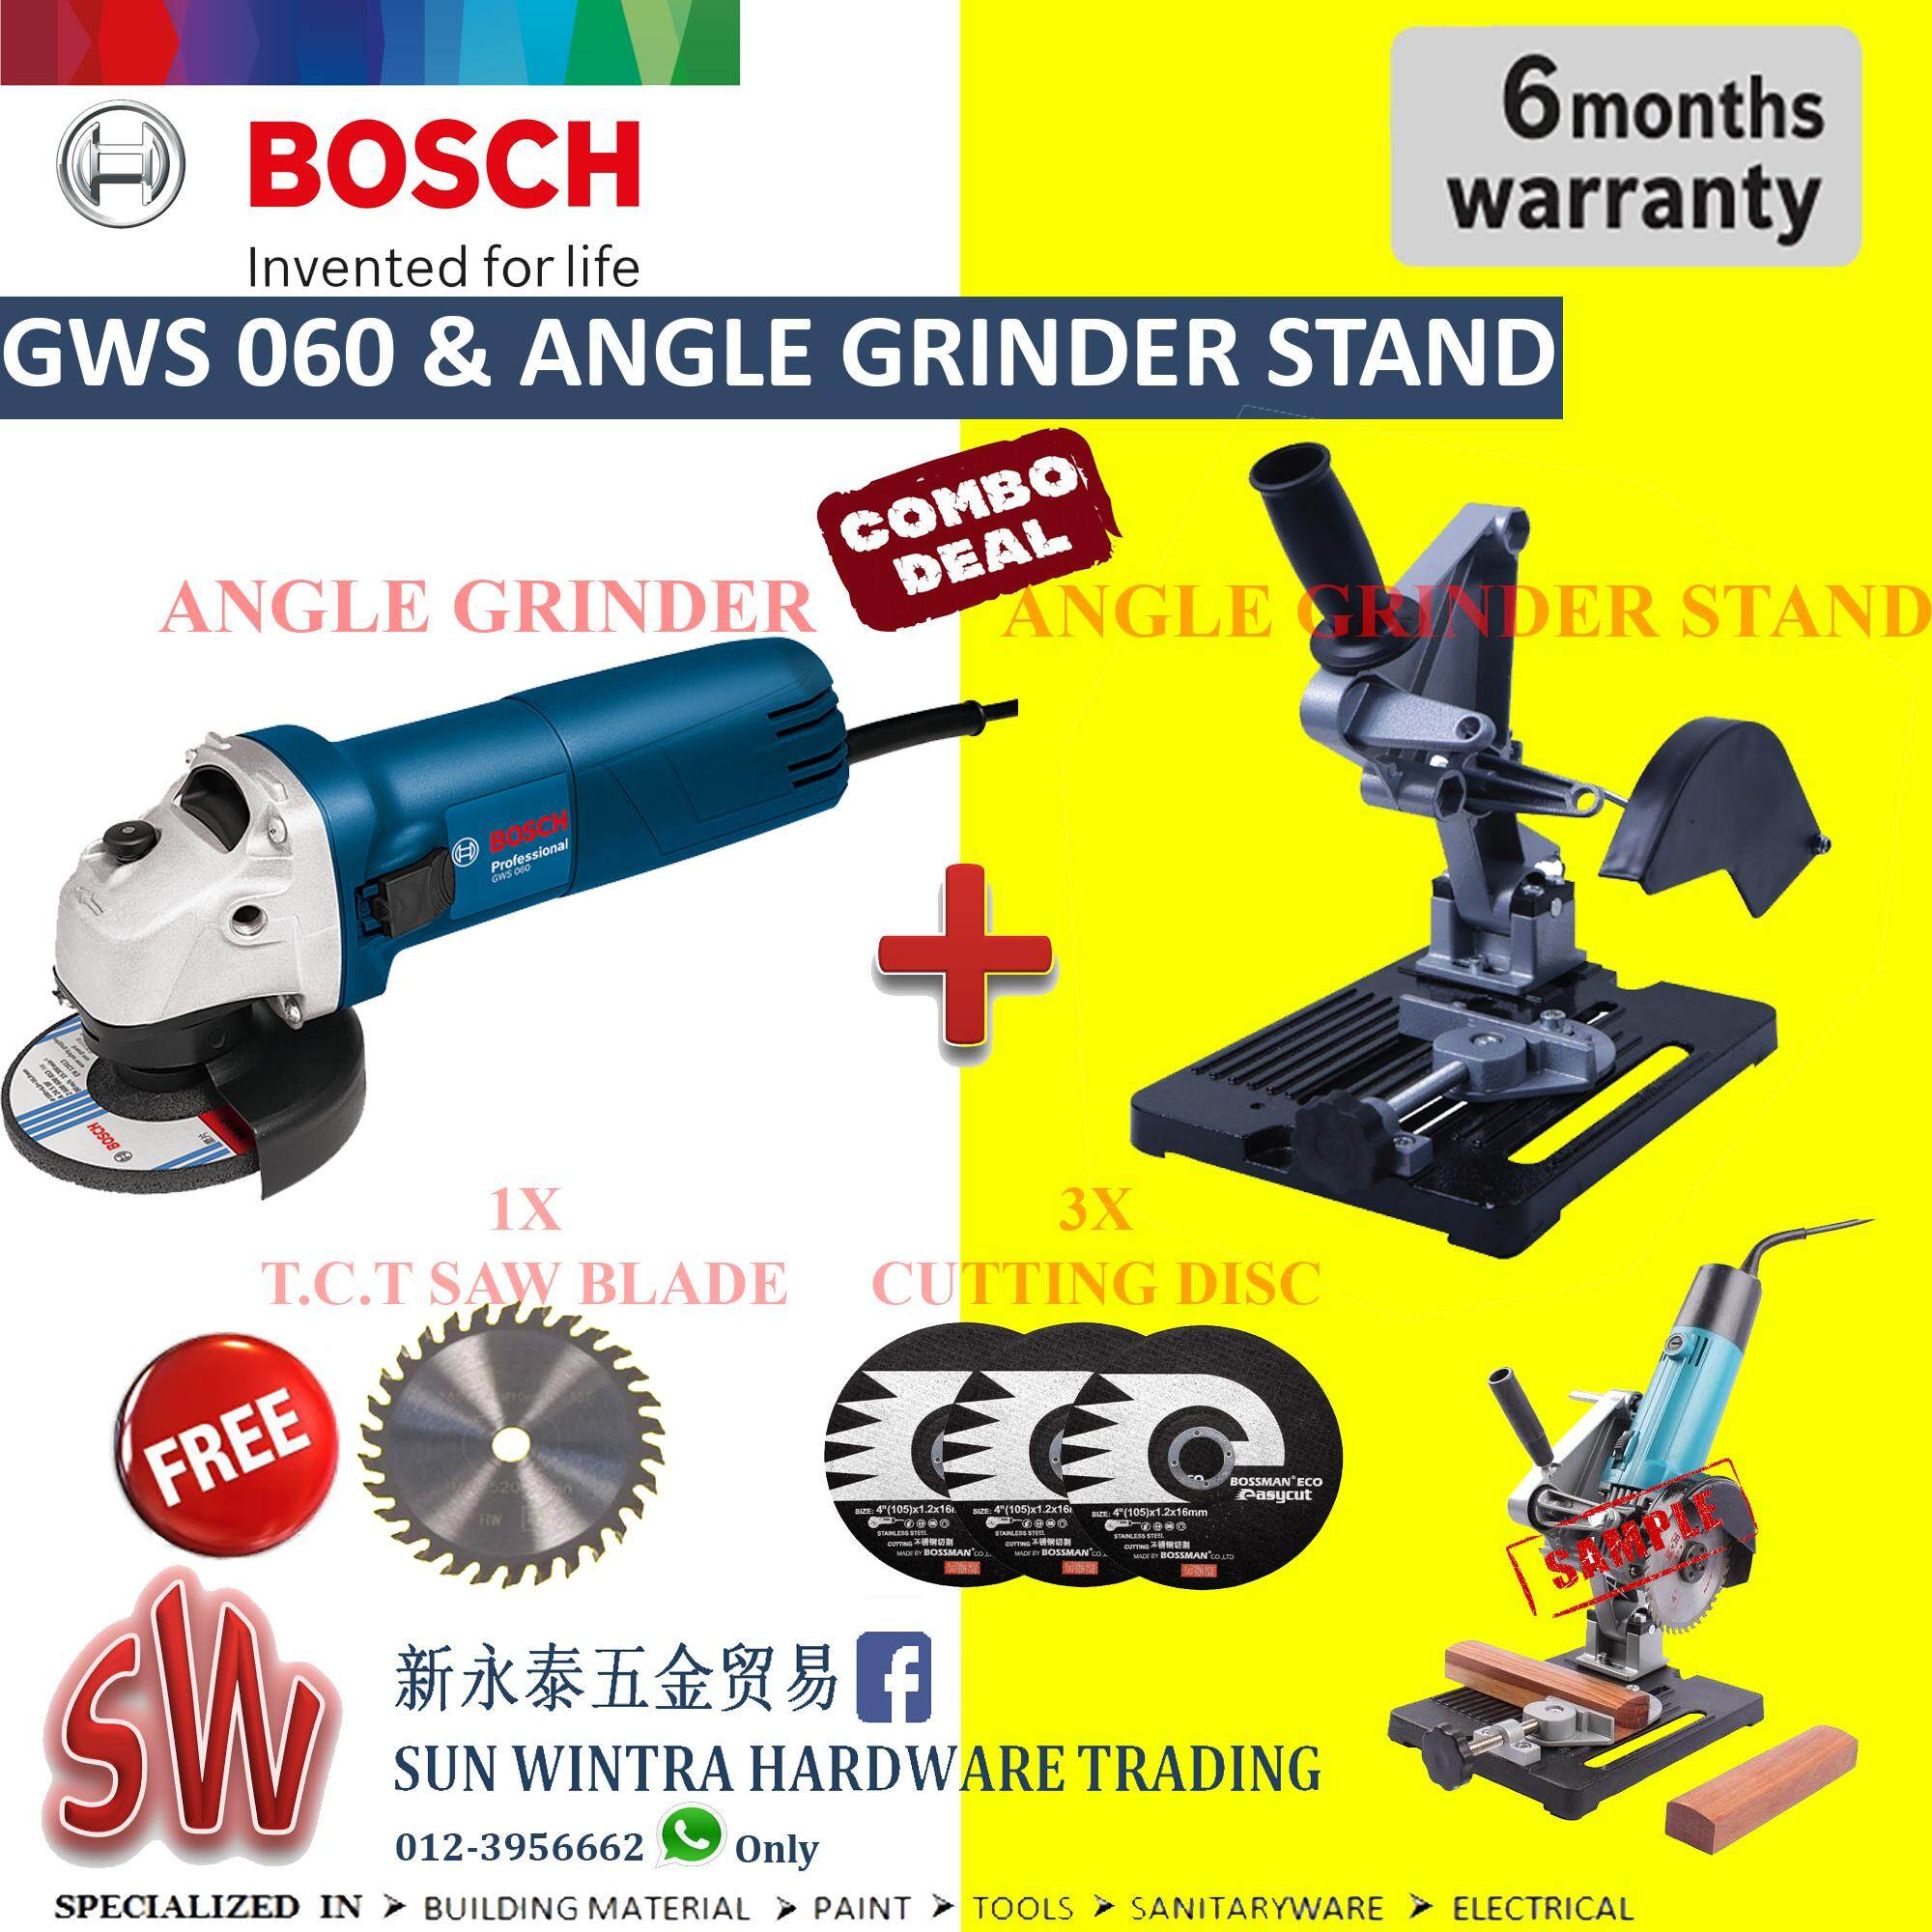 COMBO DEAL BOSCH GWS060 ANGLE GRINDER + ANGLE GRINDER STAND WITH F.O.C ACCESSORIES